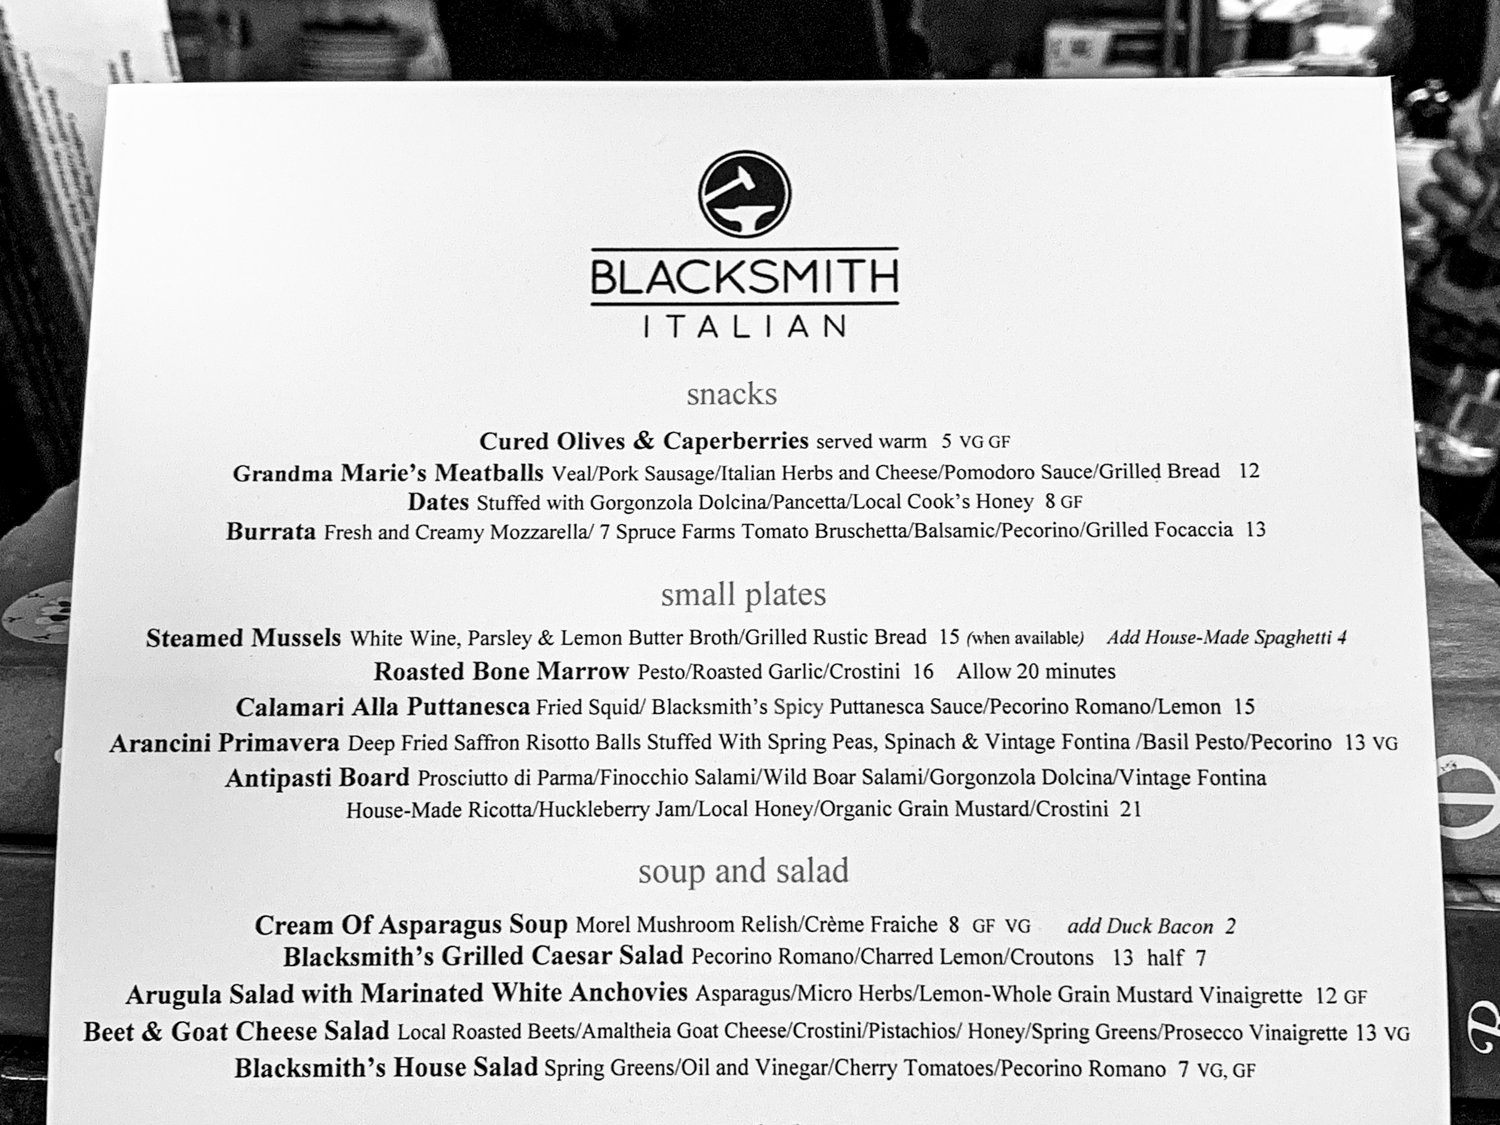 Dinner at Blacksmith Italian – A Truly Magnificent Meal by Steven Shomler Culinary Treasure Network